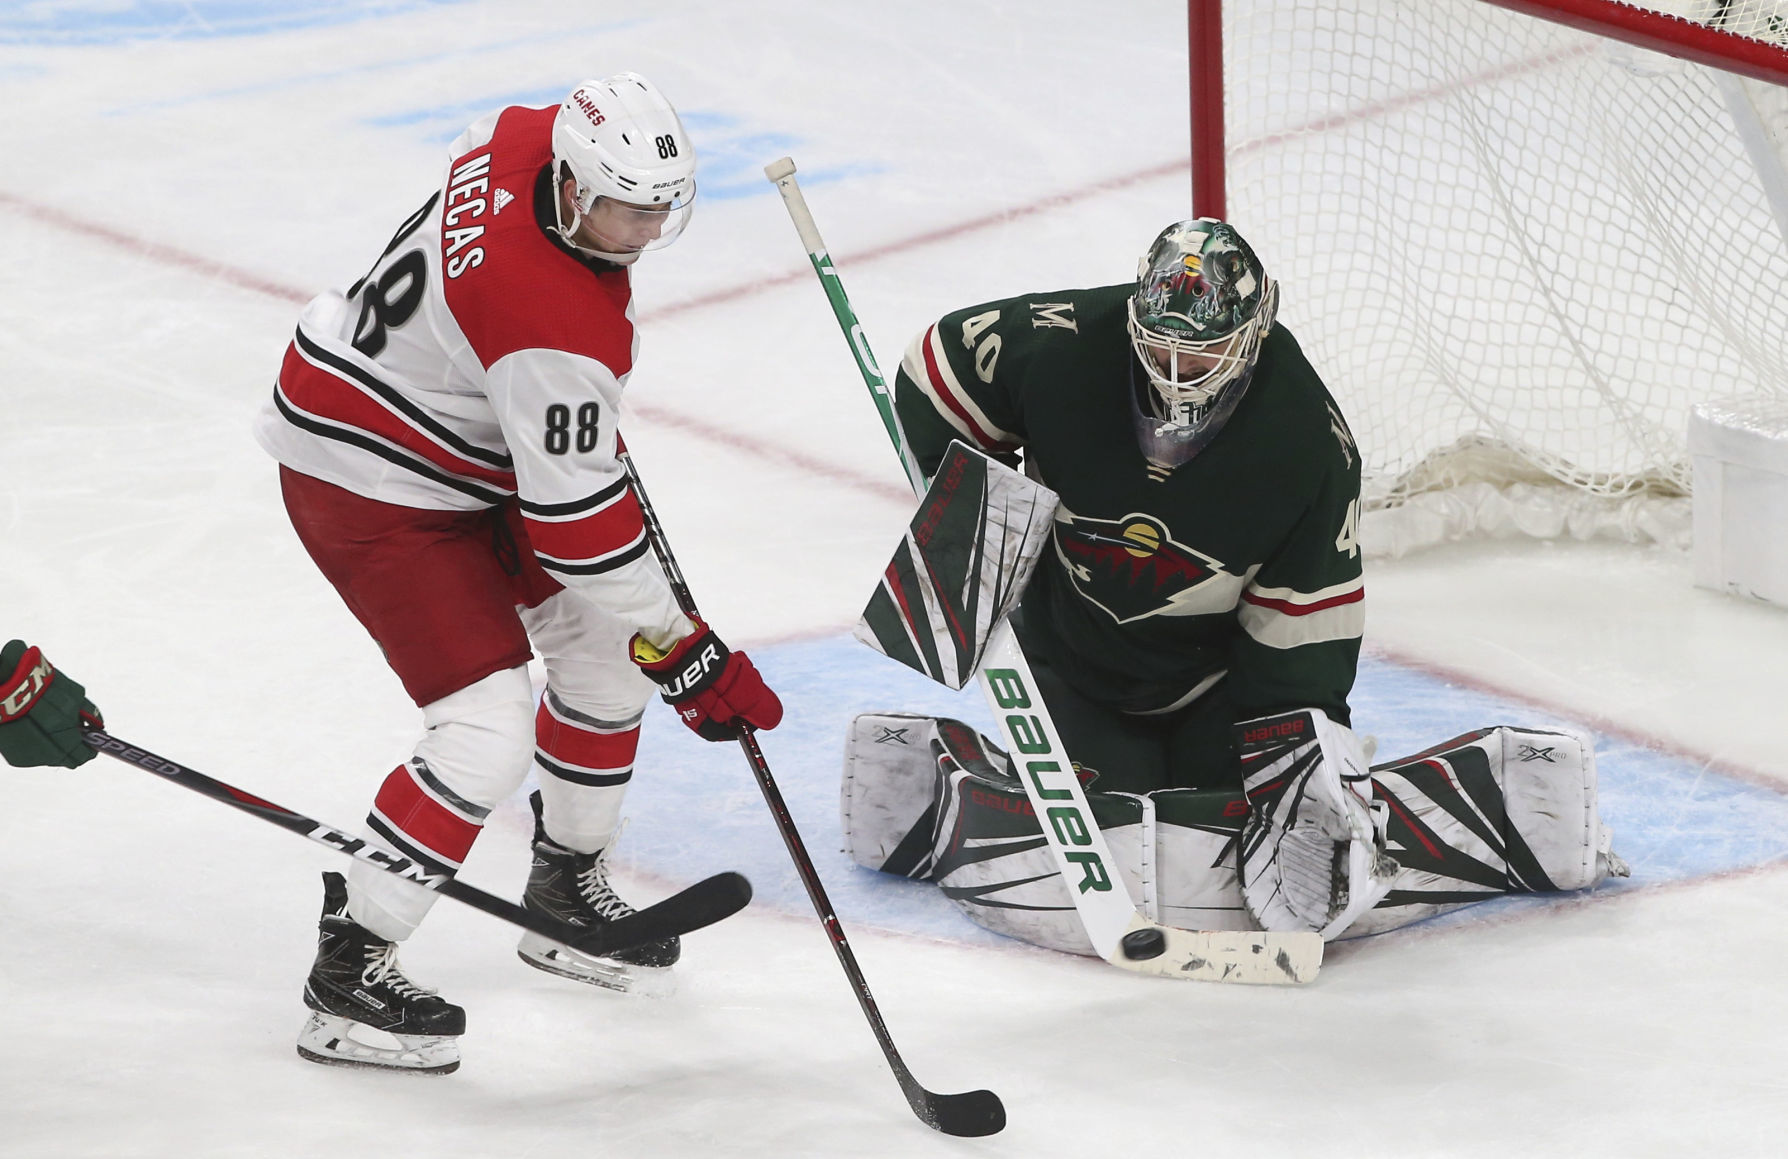 Where Would The Wild Be Without Goaltender Devan Dubnyk?